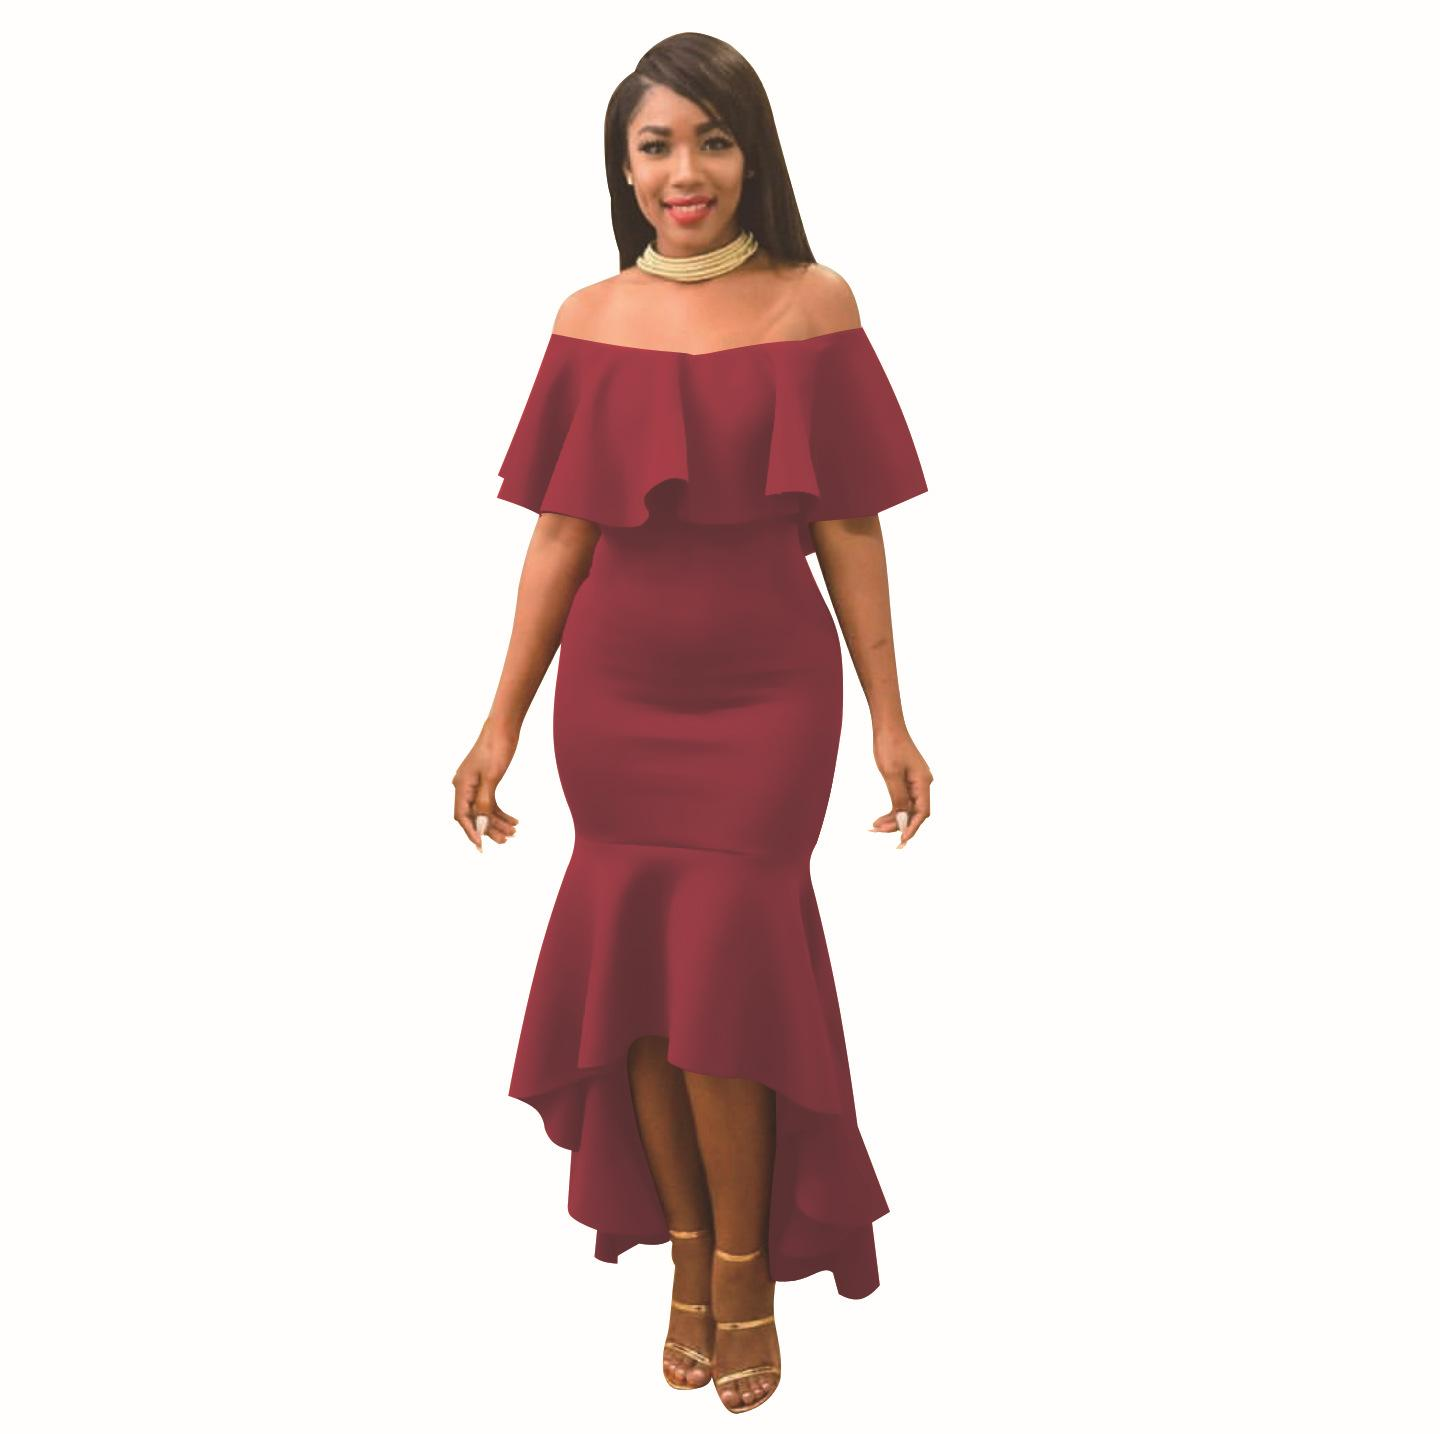 eda04d9ce50bc Women S Dress 2019 New Simple Ruffled Dresses Fashion One Shoulder Long  Skirt Multi Color Optional Size S XL Maxi Dress Red Dress From Larch